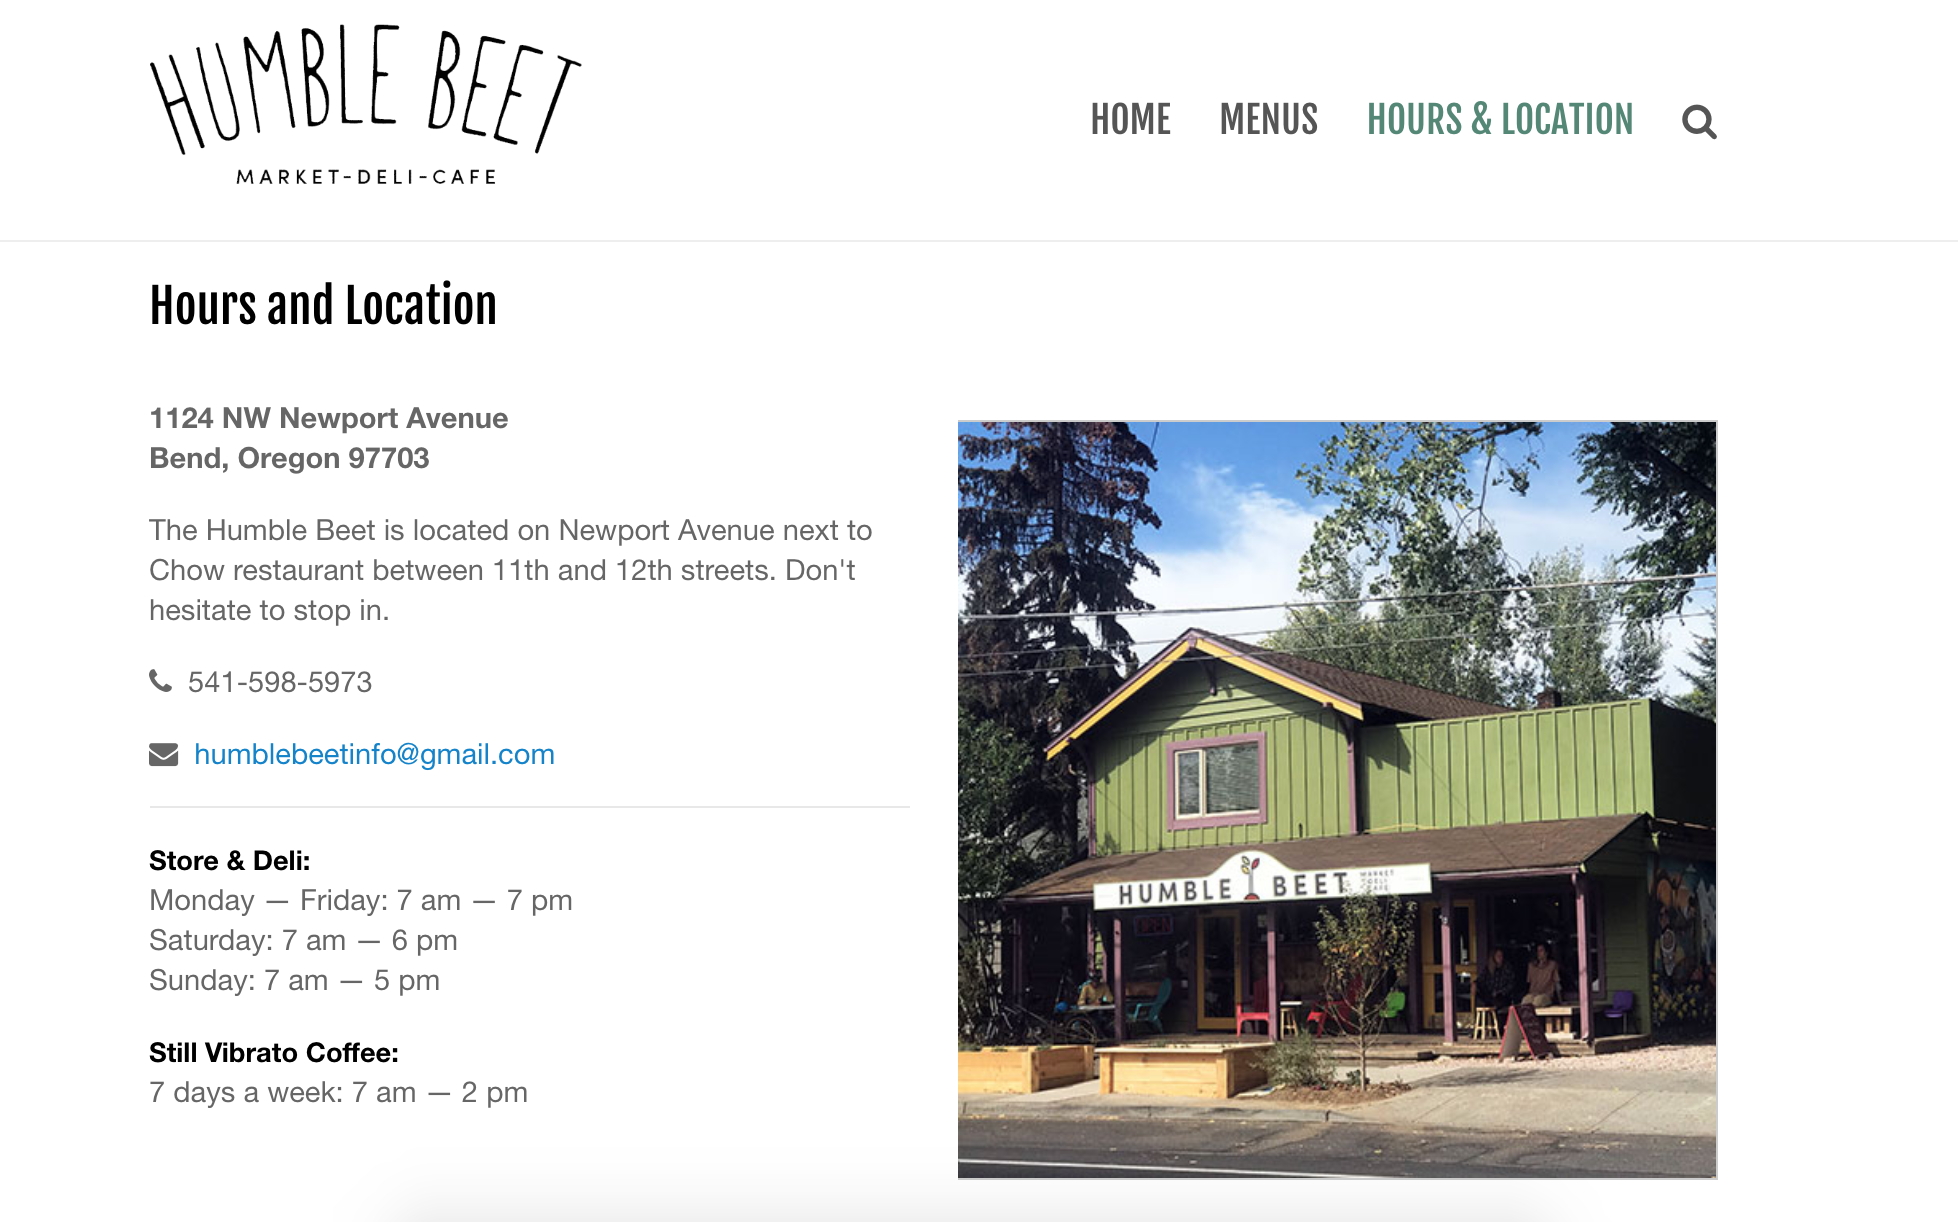 The Humble Beet hours and location